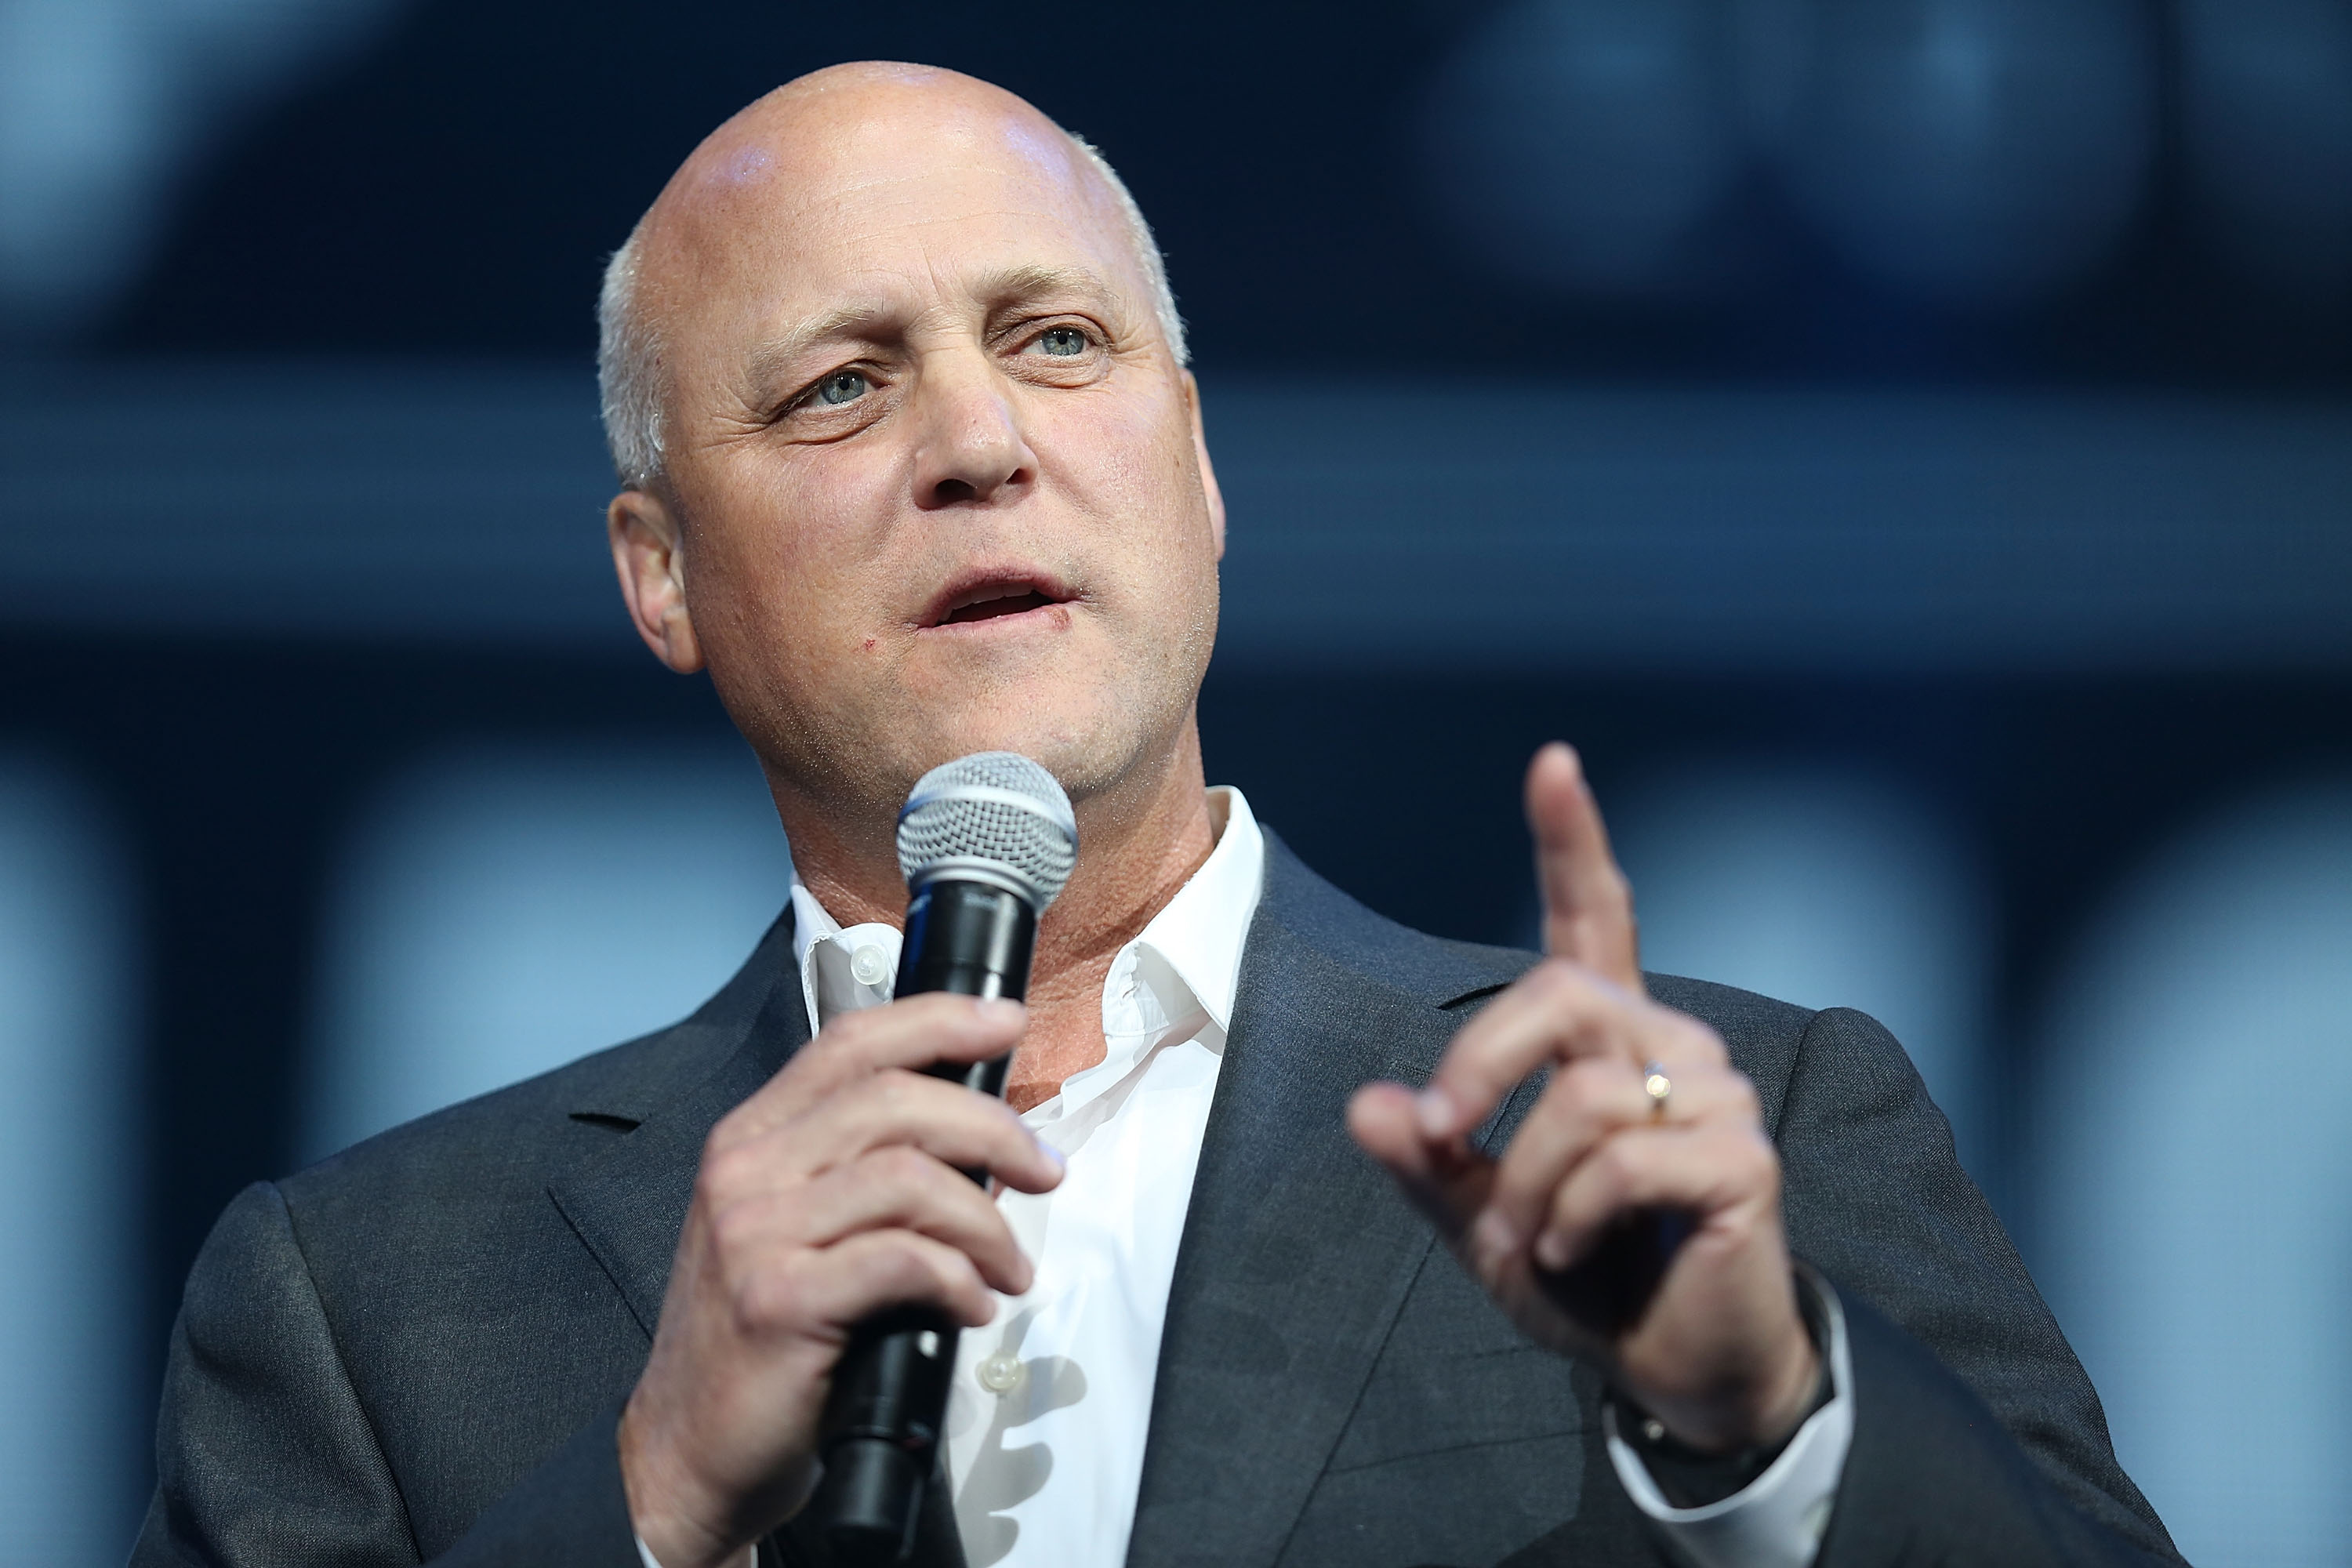 New Orleans Mayor Mitch Landrieu speaks during a Hurricane Katrina 10th anniversary event.